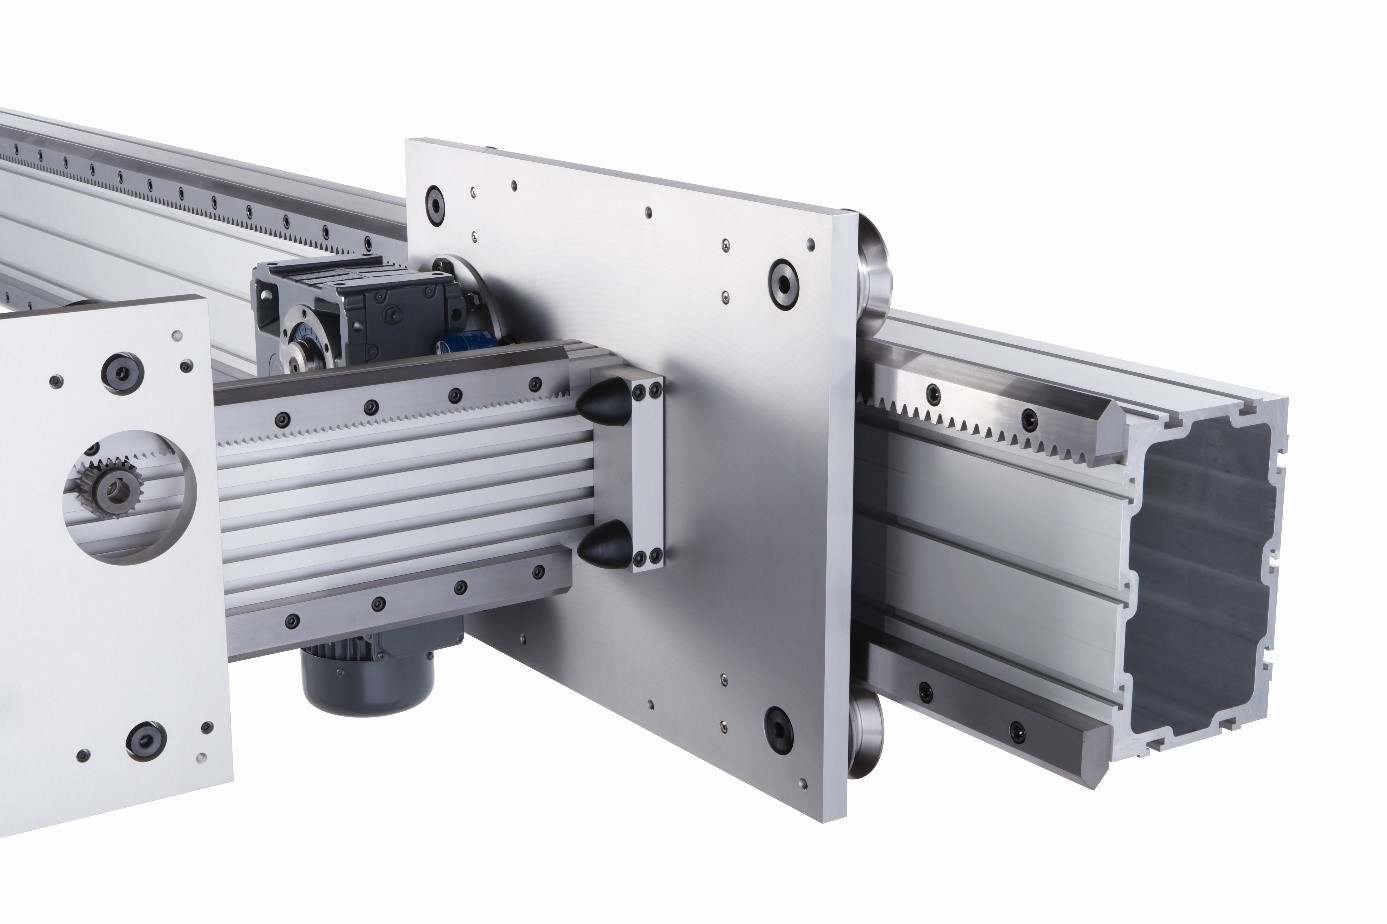 RACK AND PINION DRIVEN SYSTEMS